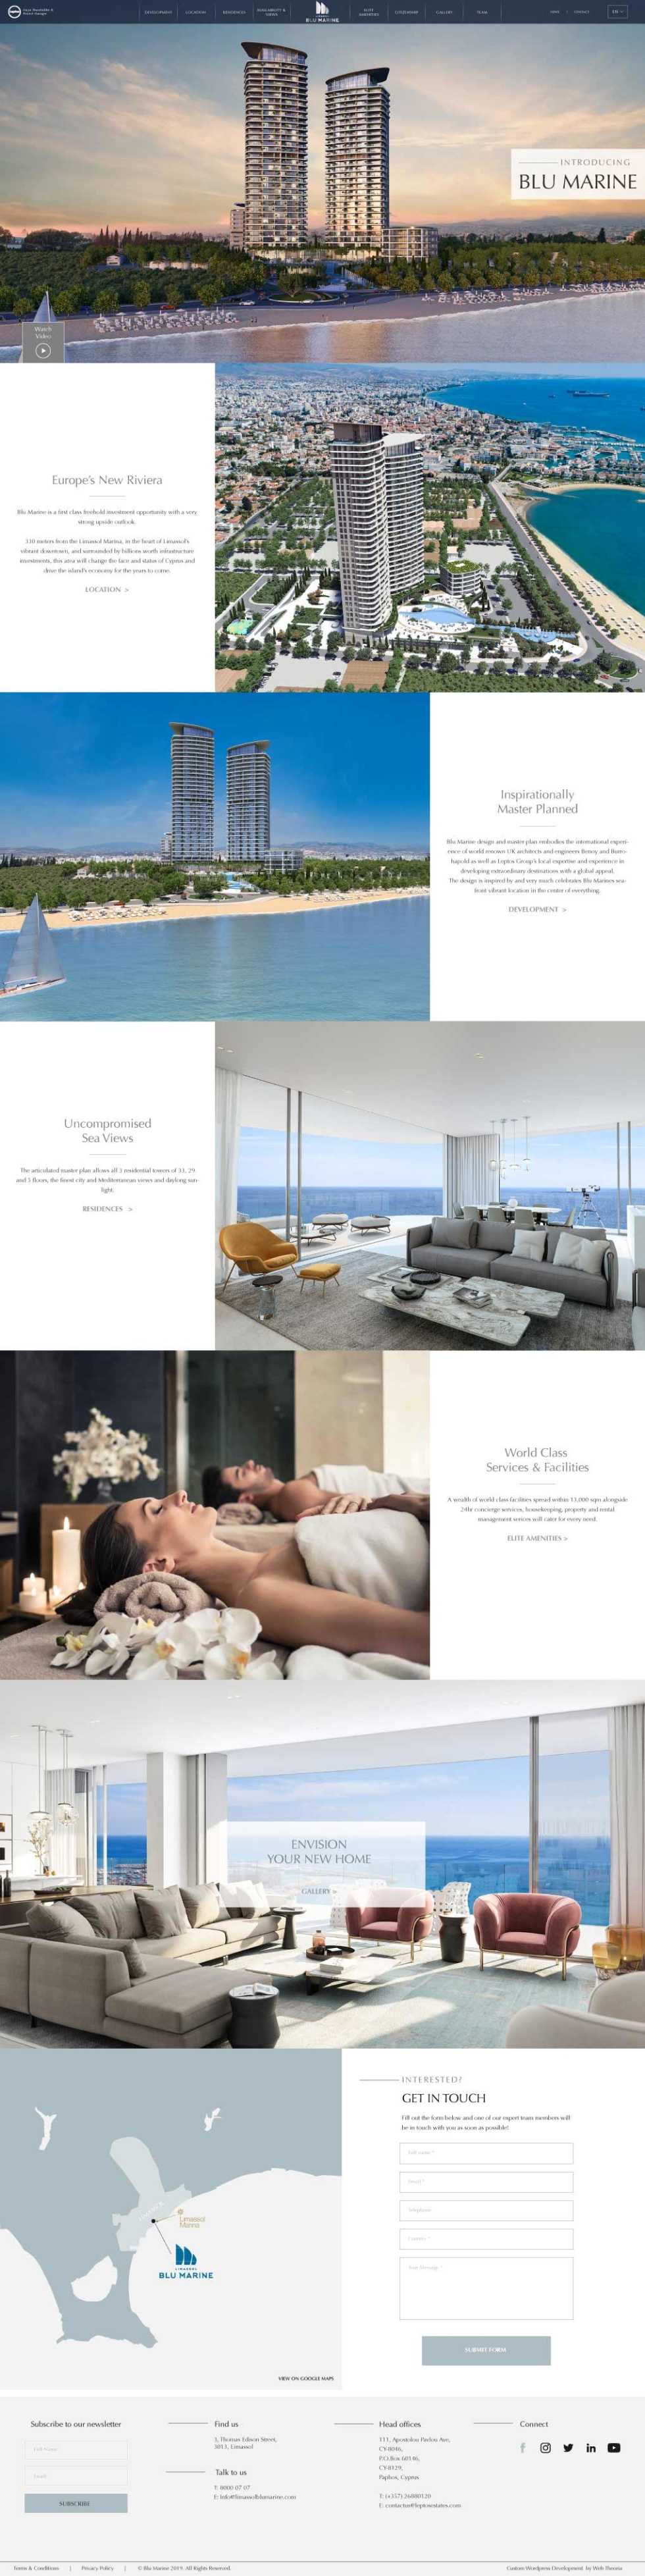 Template layout for luxury hotel company. Template can be broken down into 7 parts each containing a photograph of hotel amenities. Each section, aside from the image header and footer, are split into a section for a photograph and a section with a white background and descriptive black text.